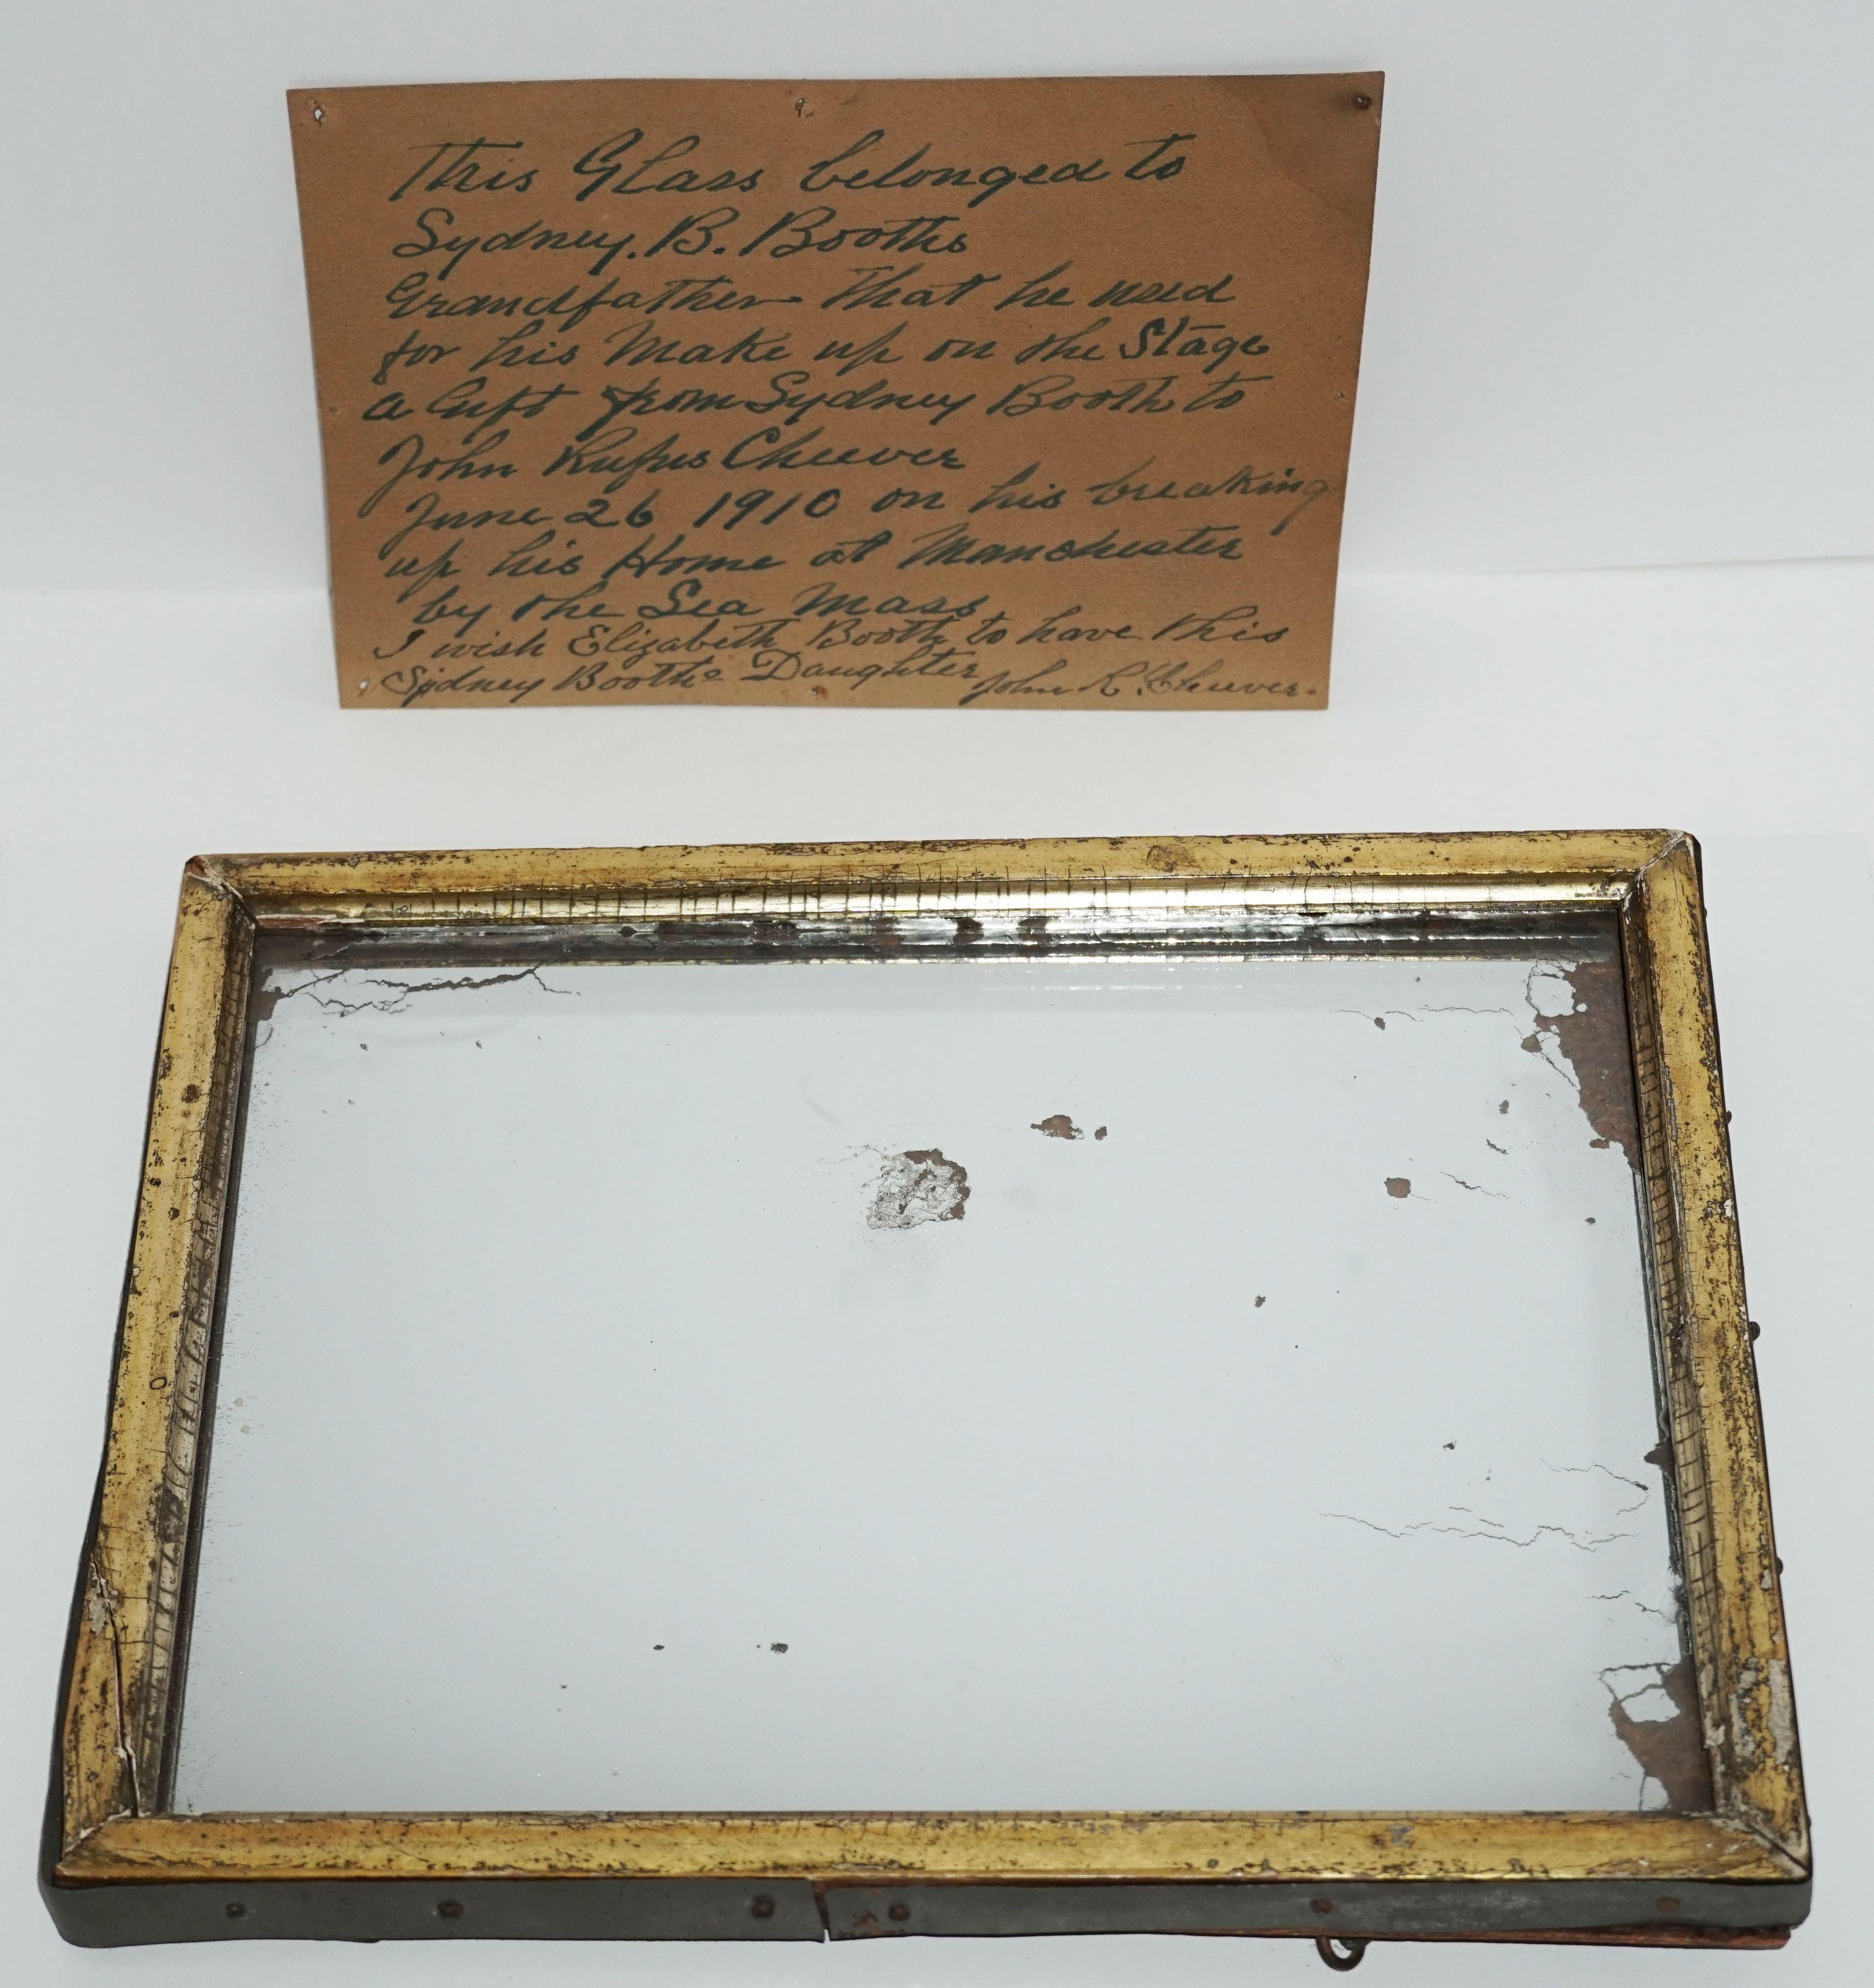 John Wilkes Booth Family Owned Mirror, Showing the Reflection of an Assassin? Ex-Nicholson Collection